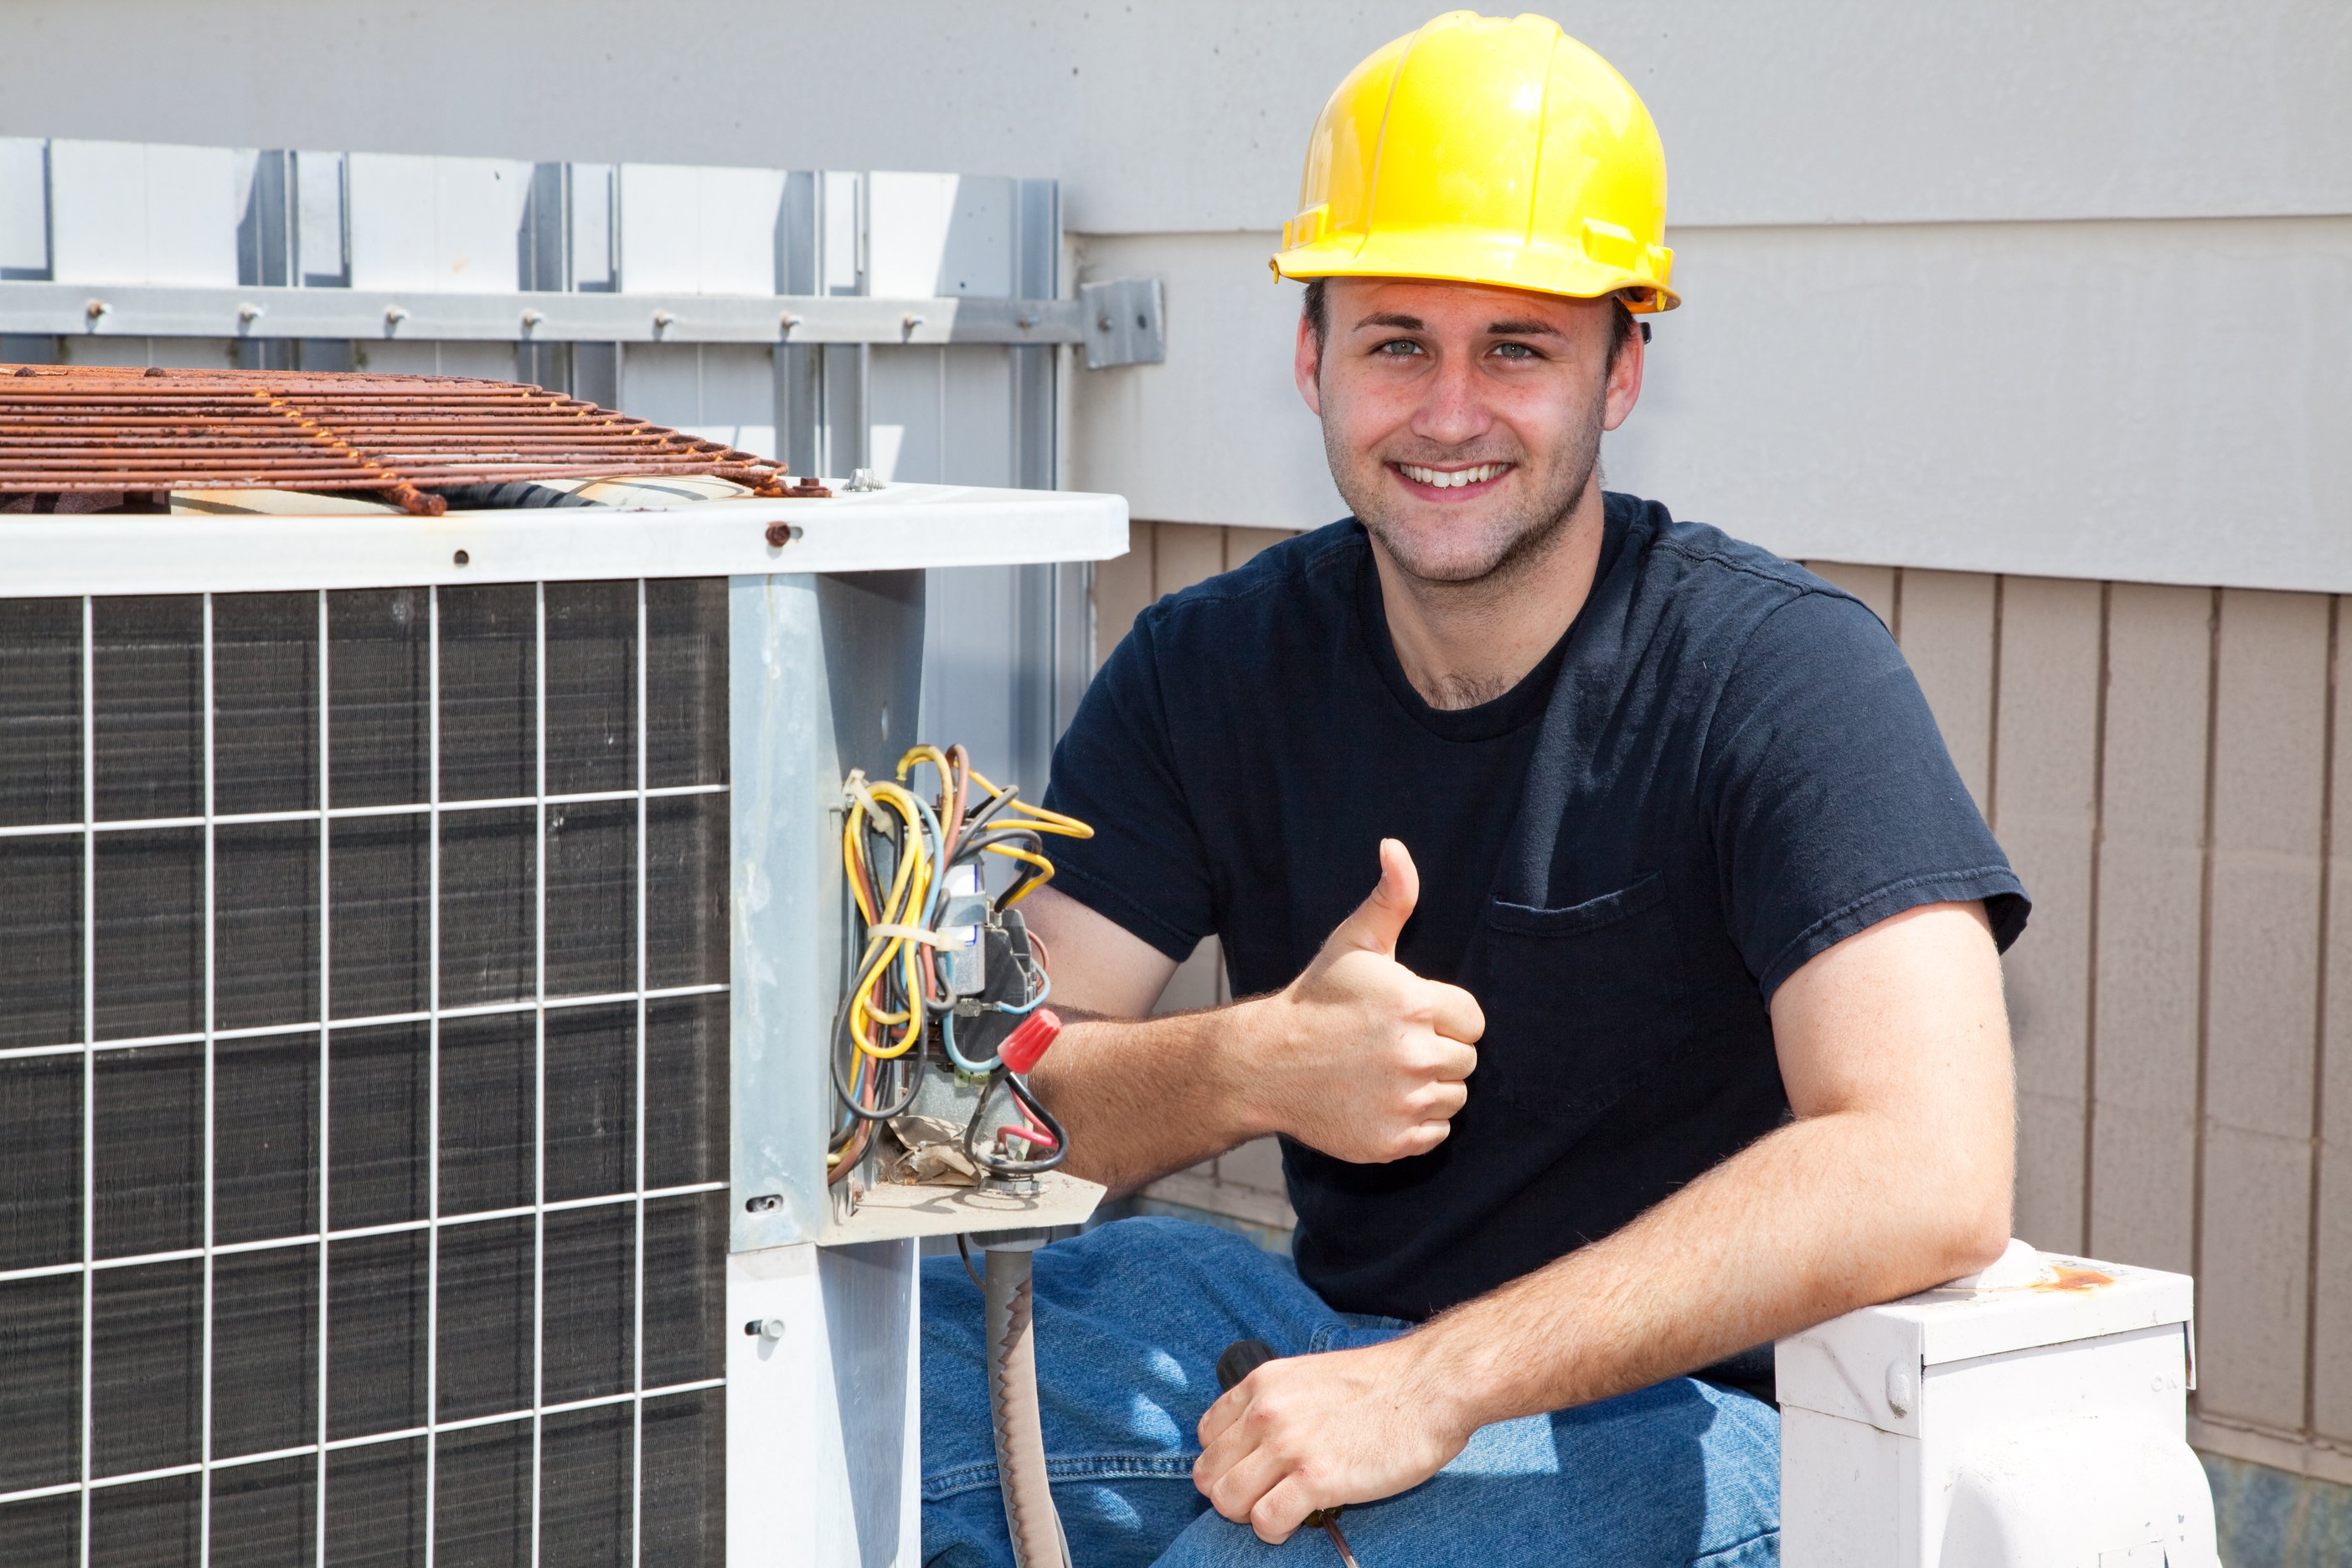 denver's best heating and ac repair - denver commercial hvac service